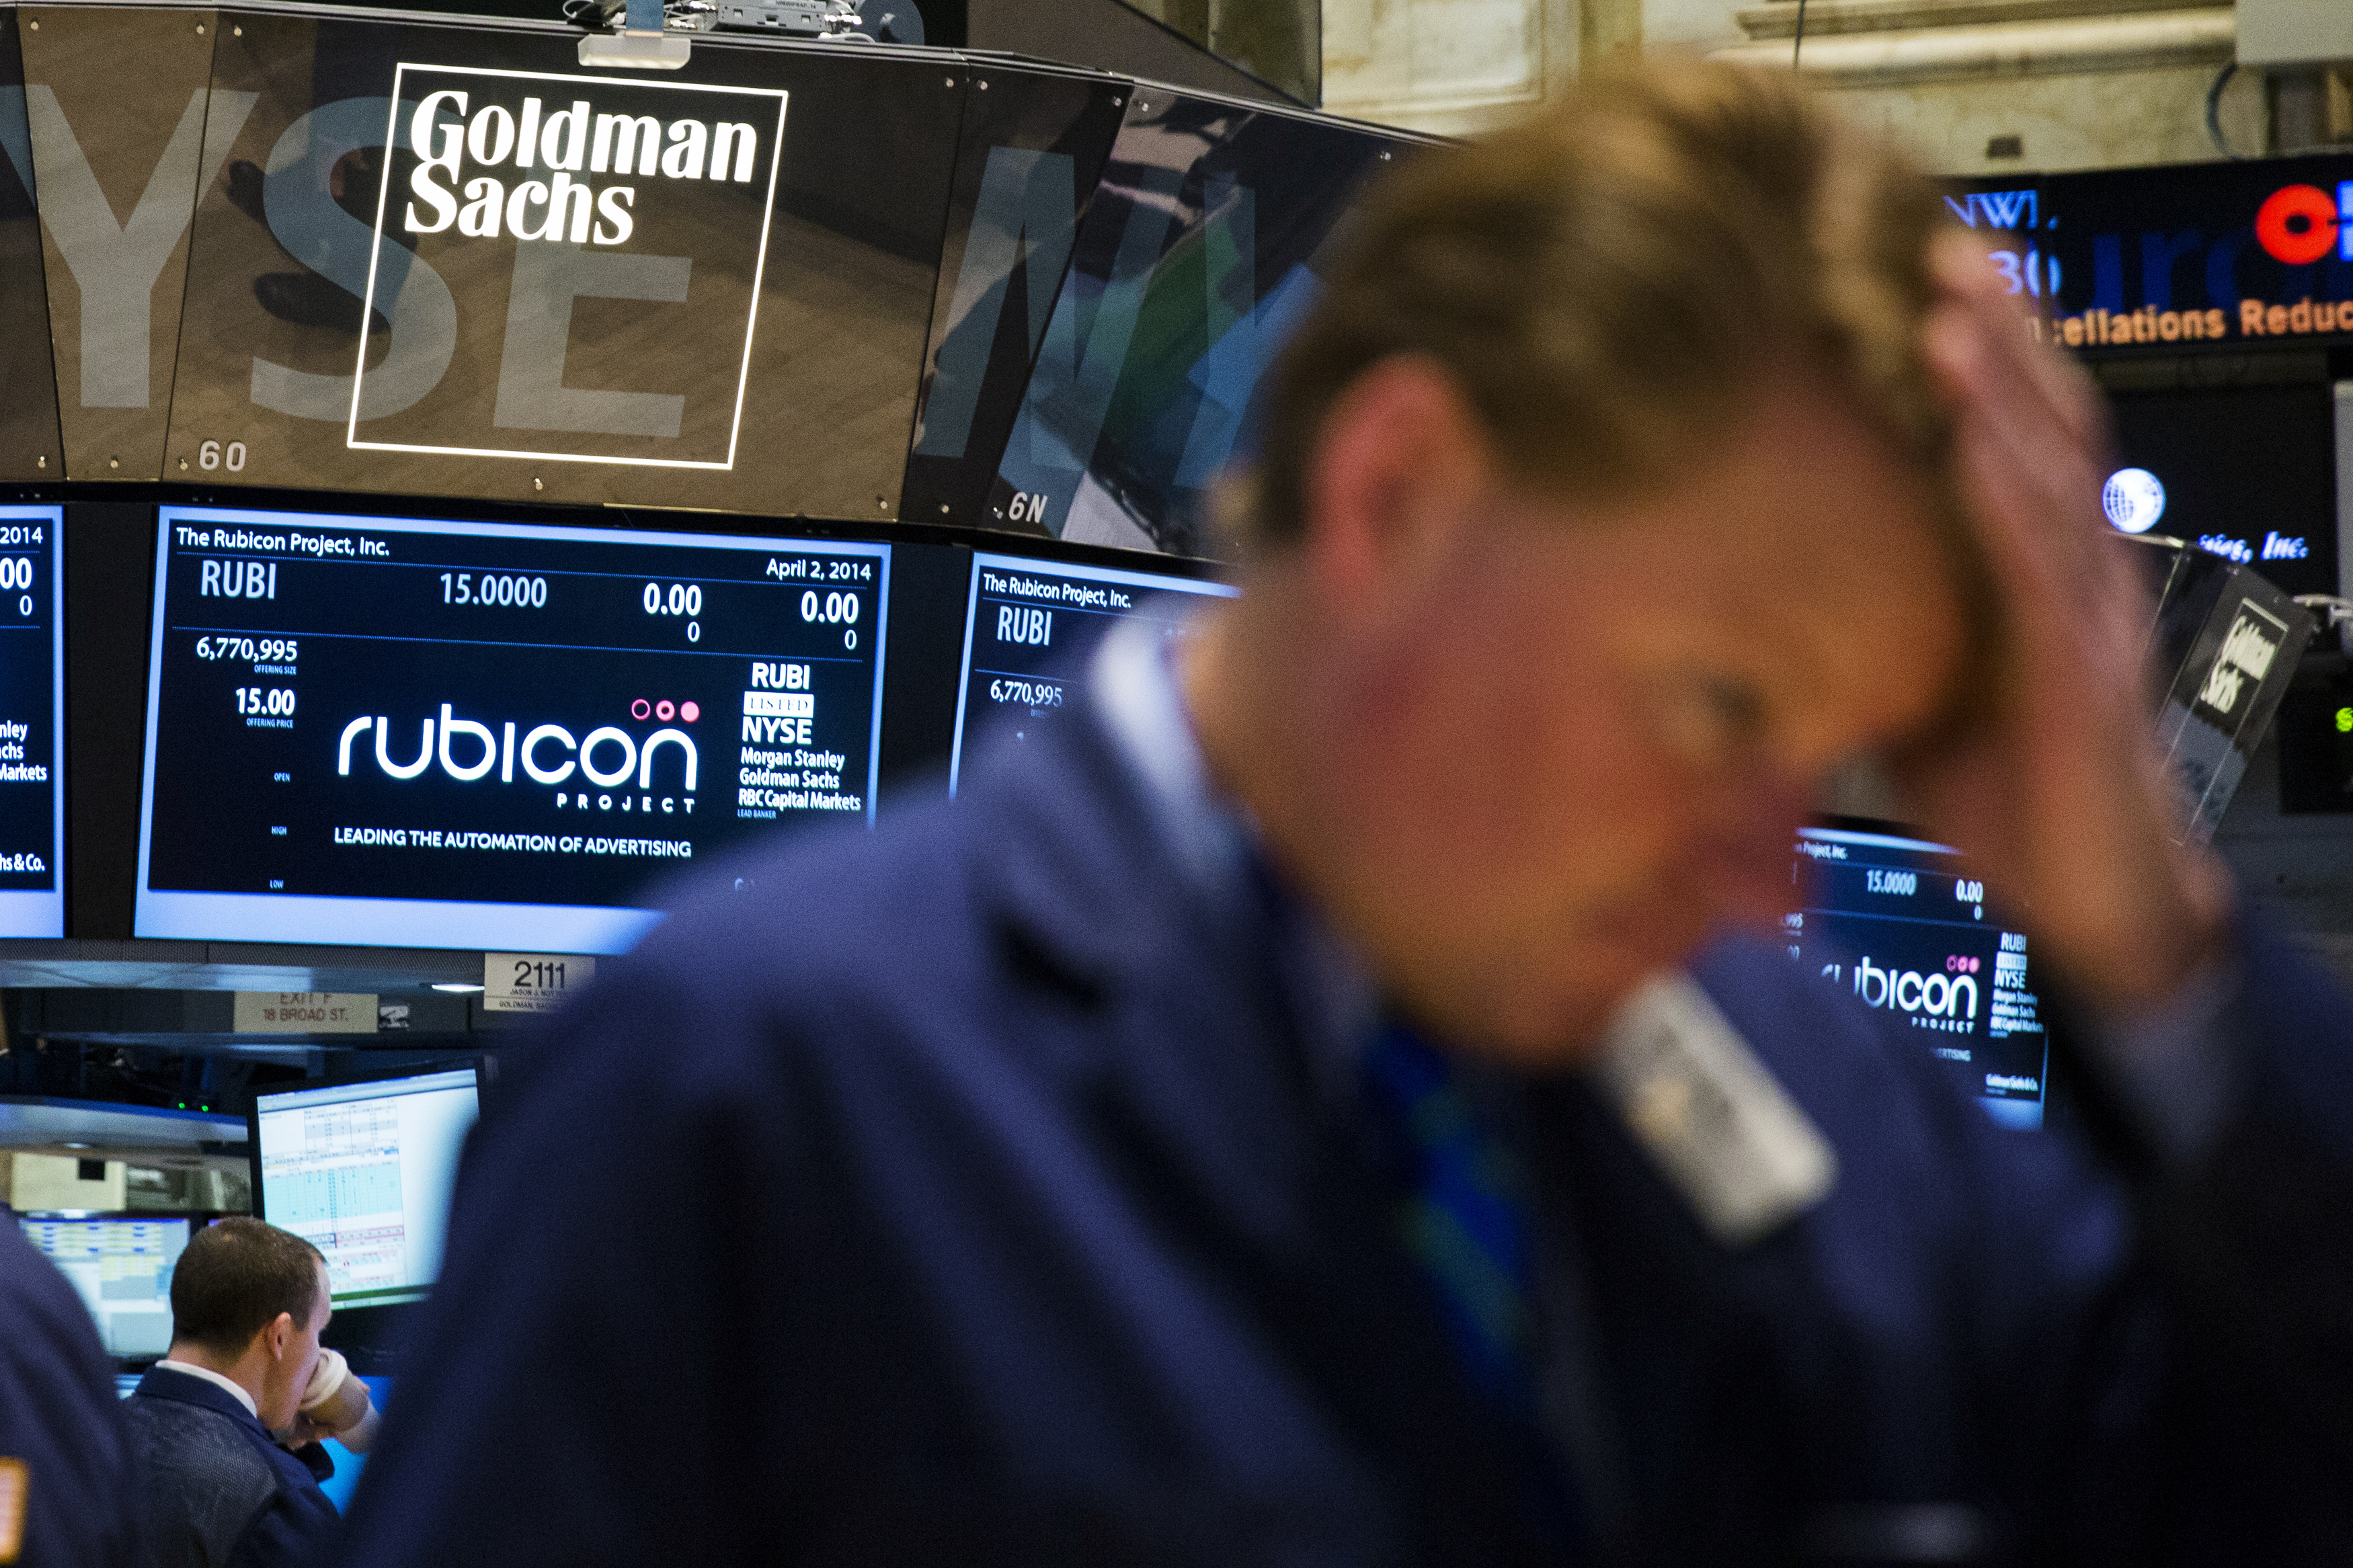 Trading Jumps But Wasn't Goldman's Best Business in 4Q